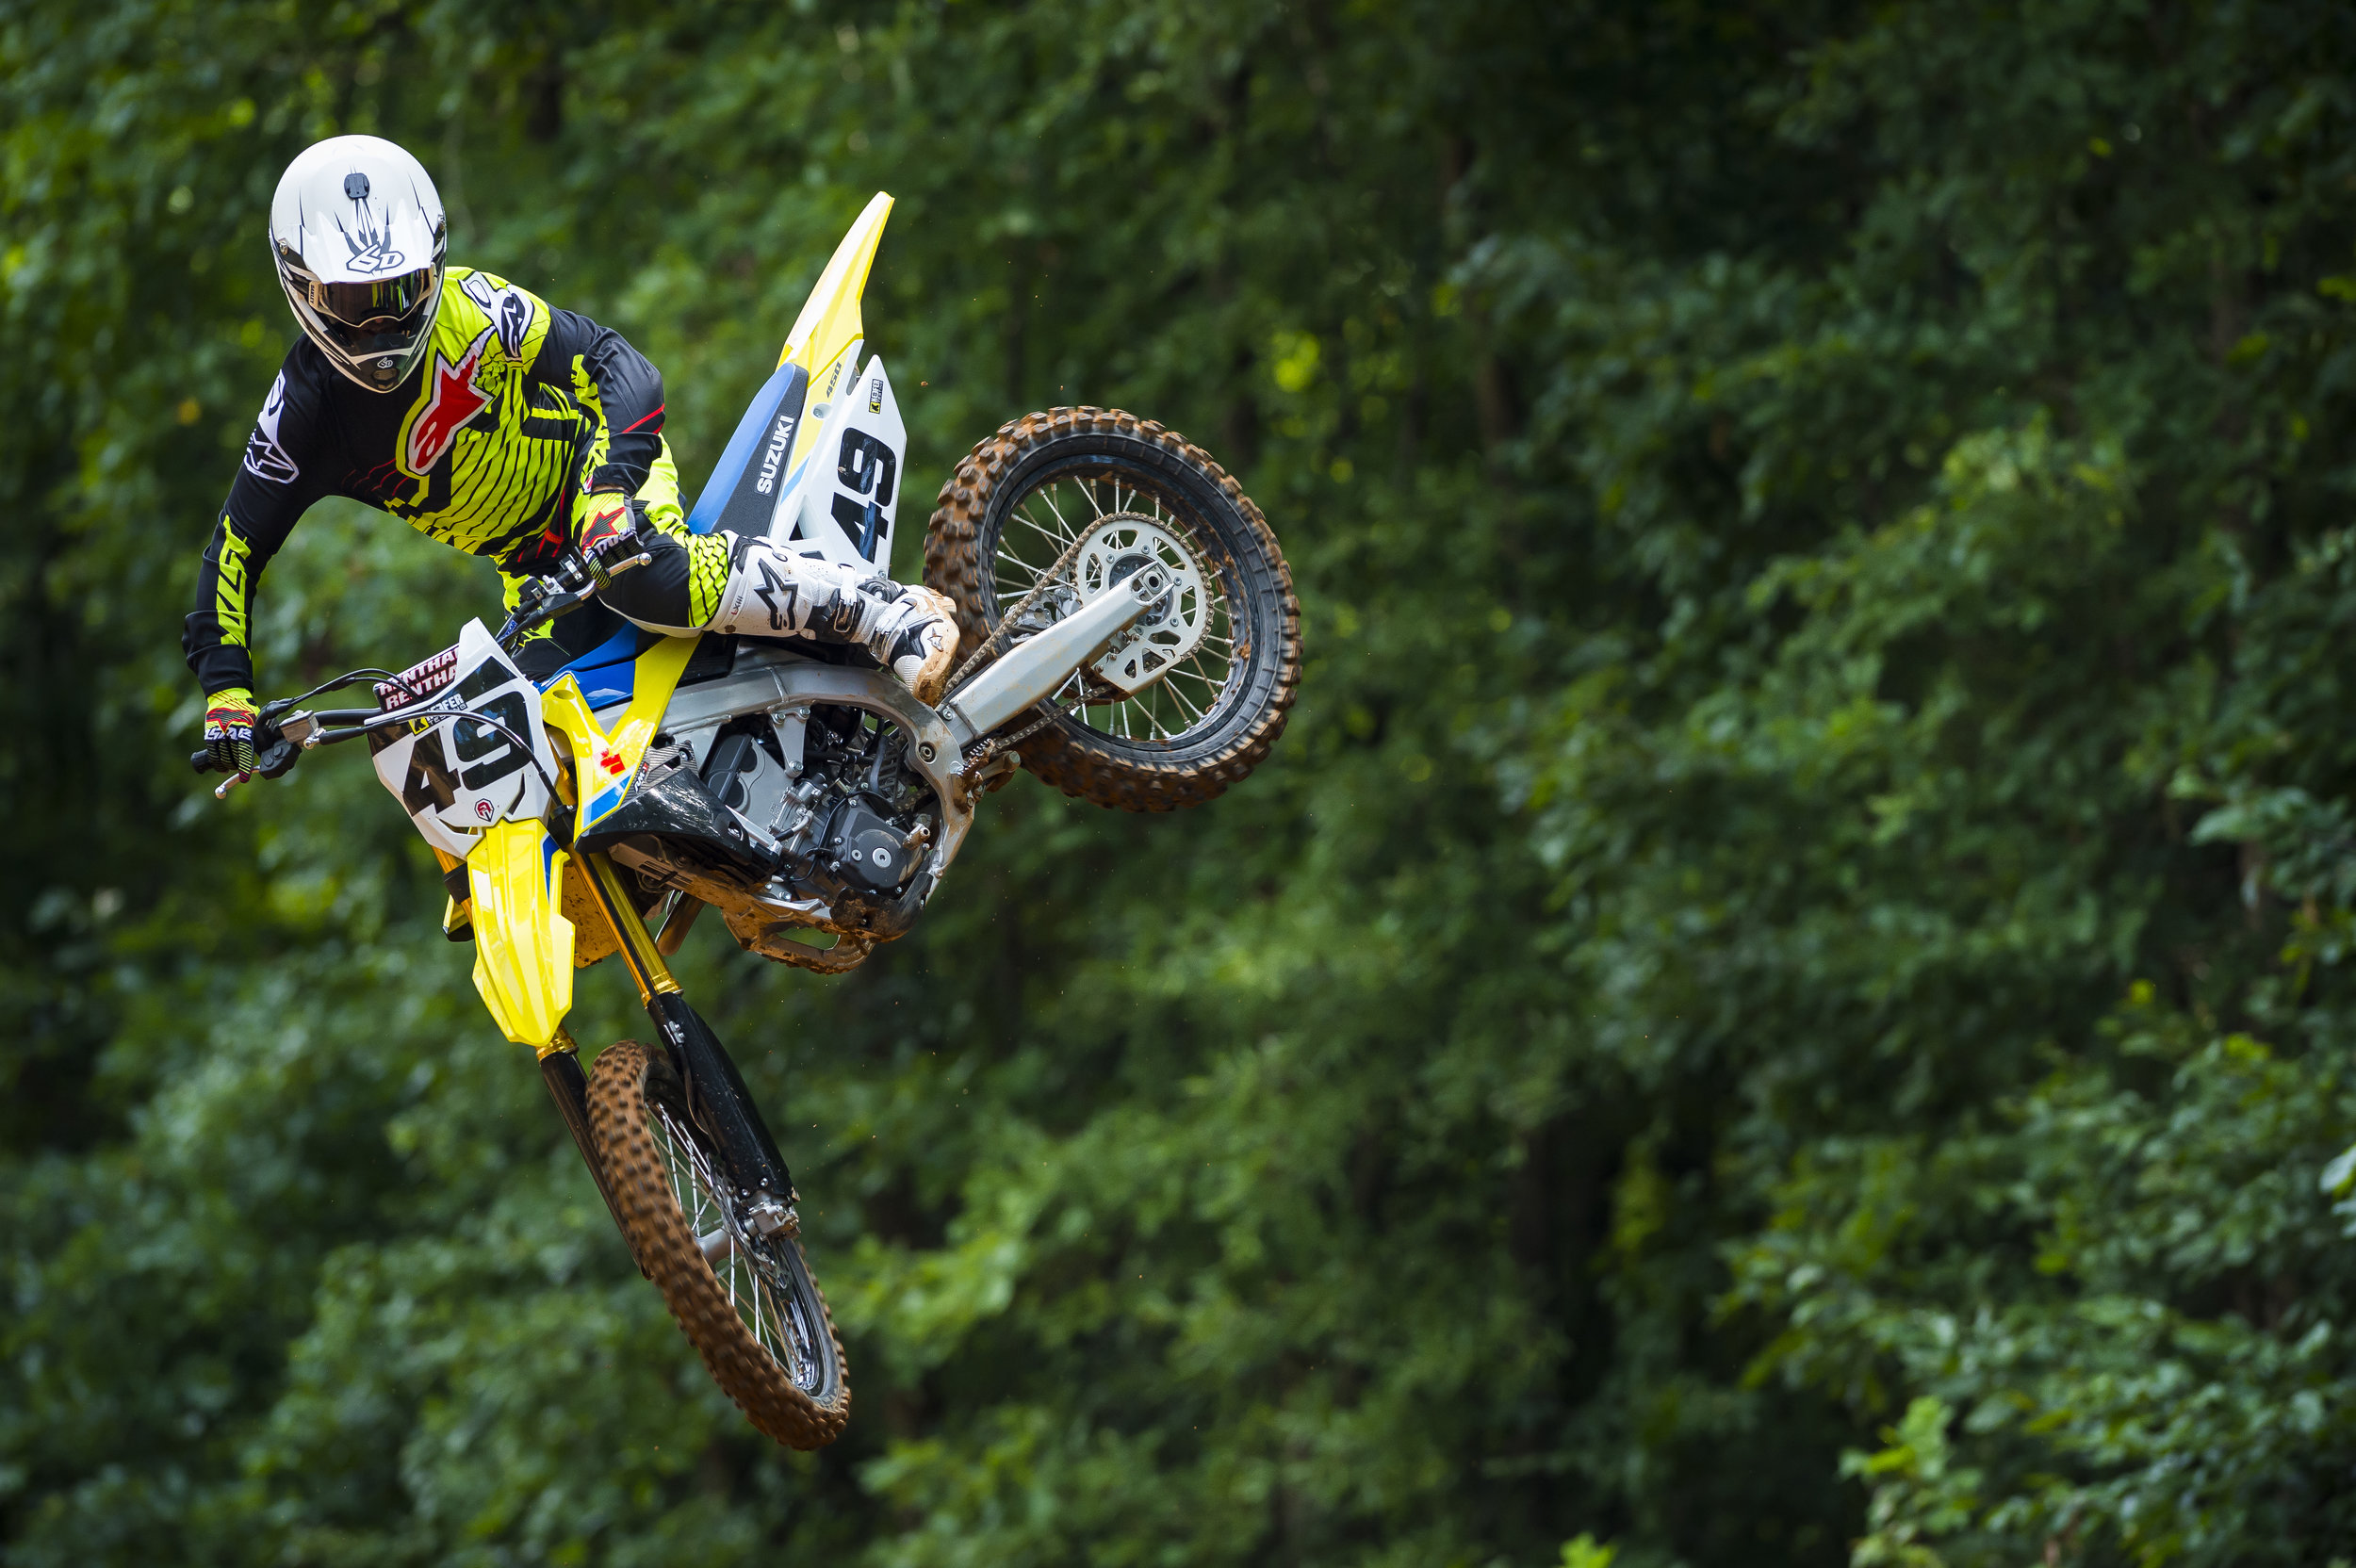 Even with the weight of the Suzuki RM-Z 450 on the heavy side, the yellow machine is quite flickable.